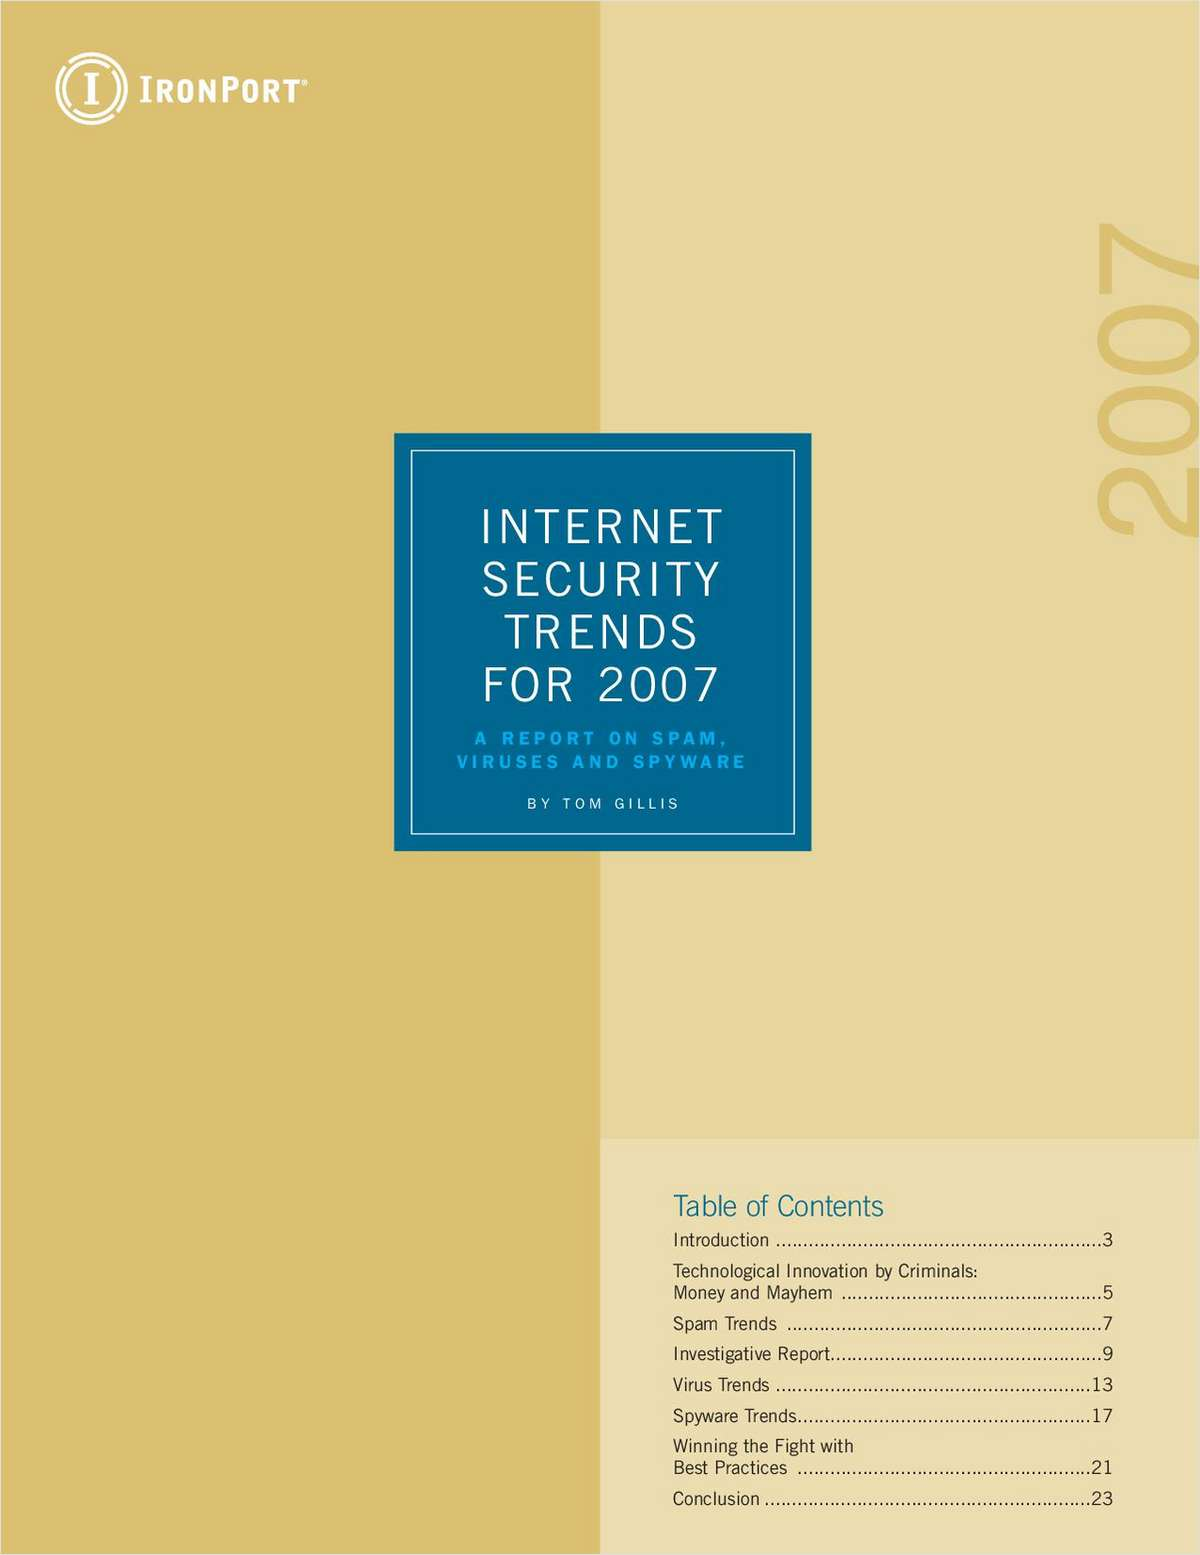 Internet Security Trends for 2007- A Report on Spam, Viruses, and Spyware